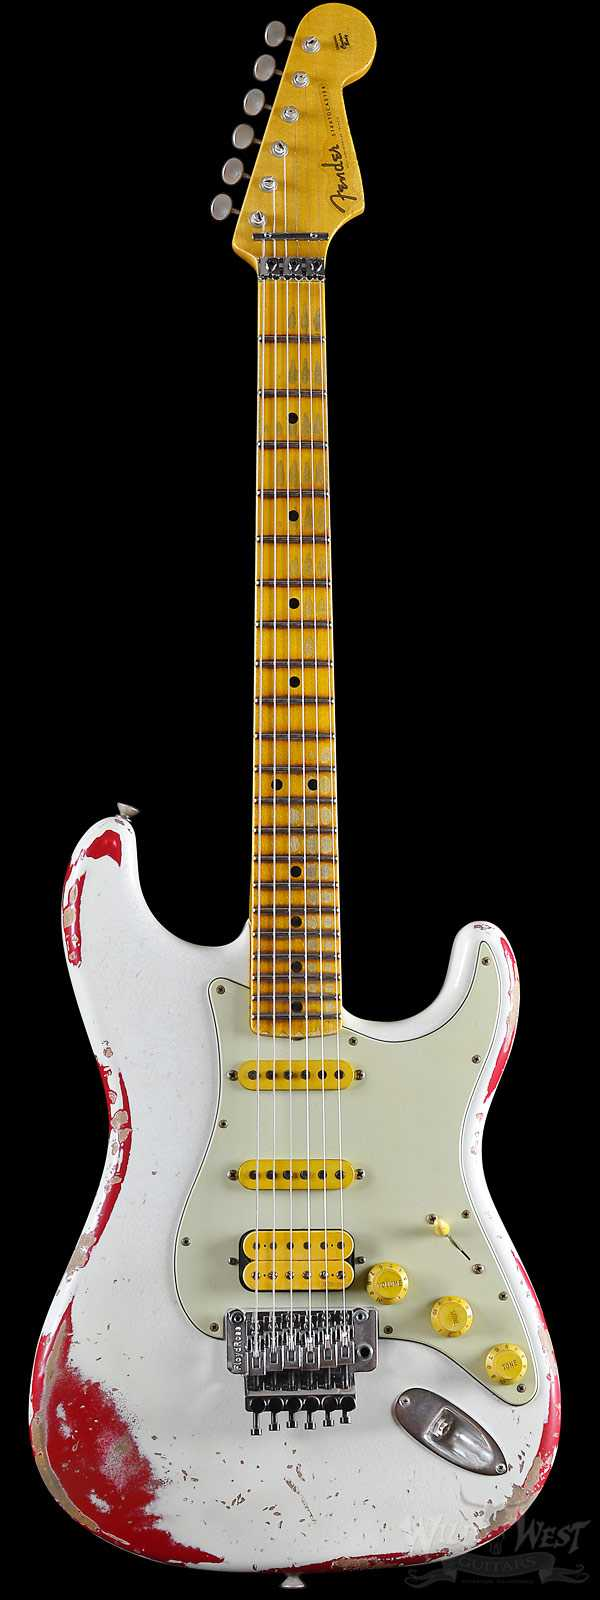 Fender 1960 Stratocaster White Lightning Faded Torino Red w/ Floyd Rose